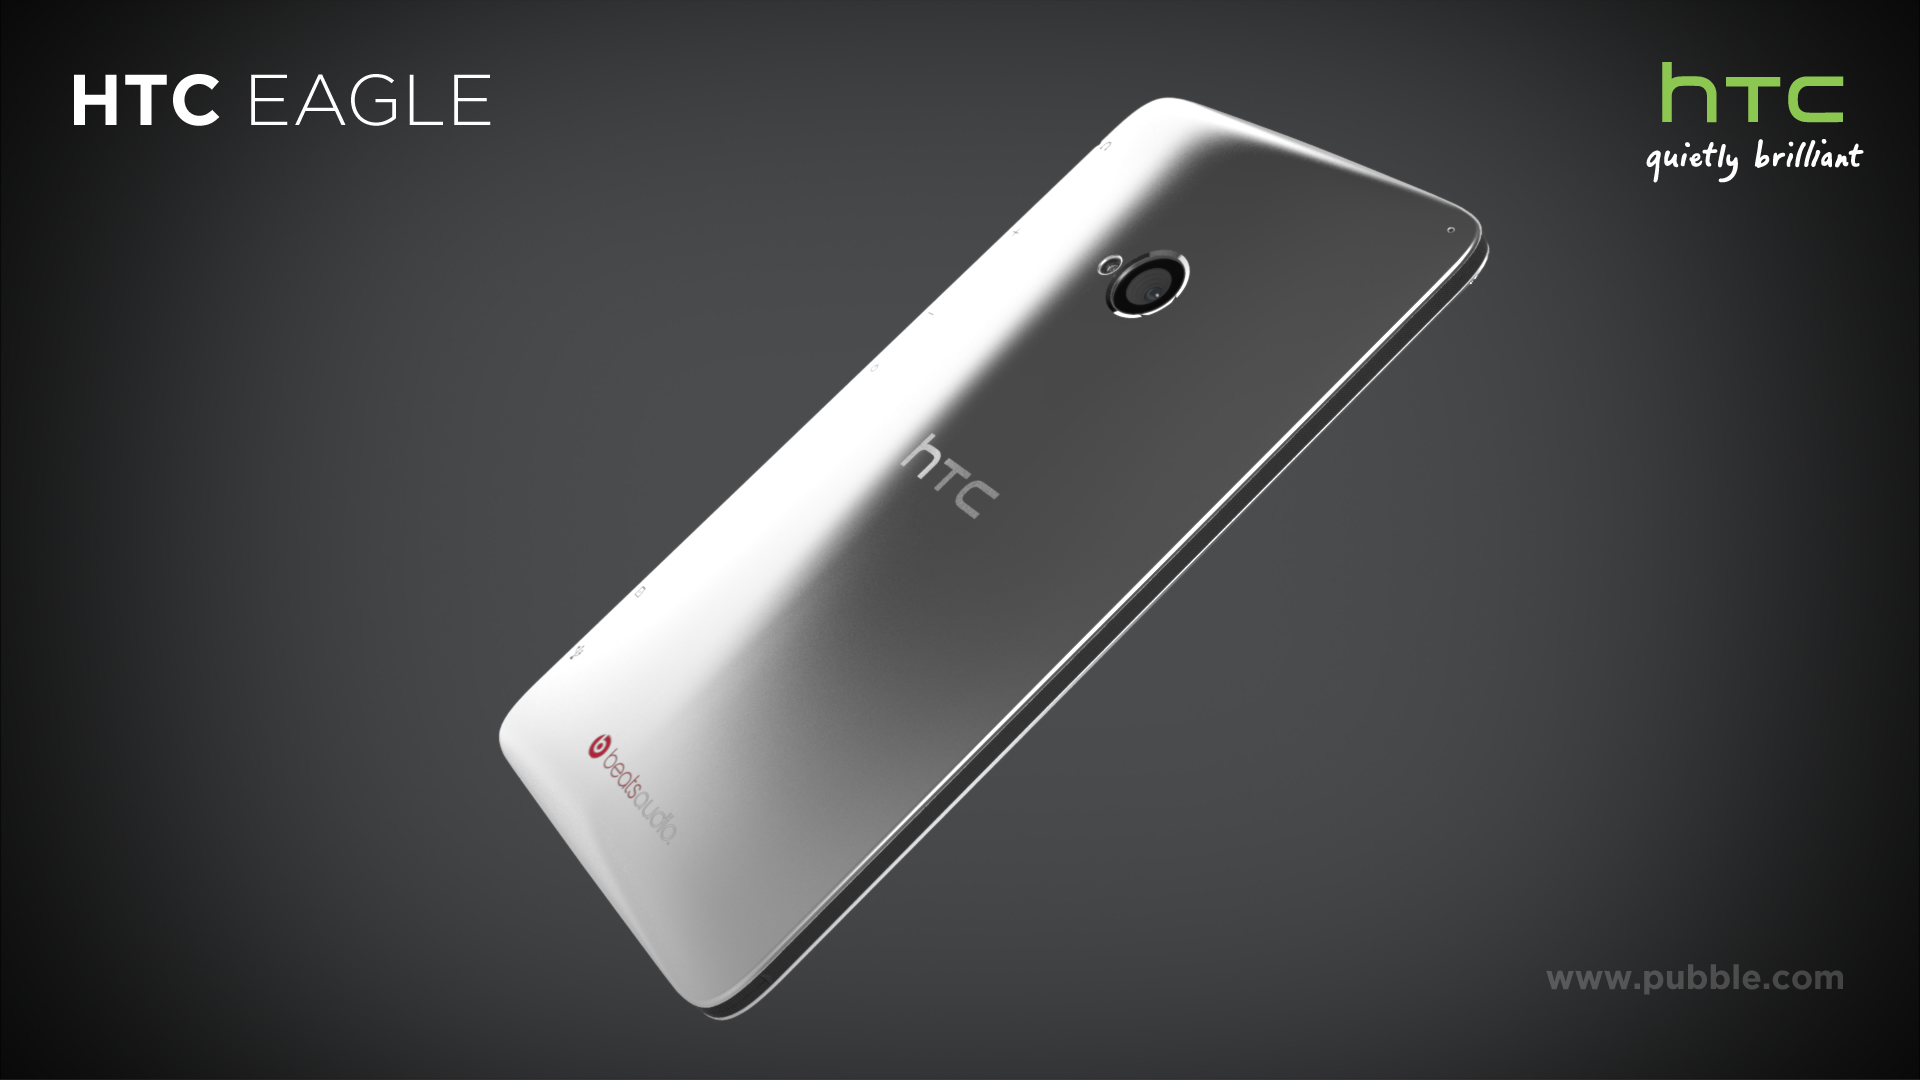 HTC Eagle - Back dynamic